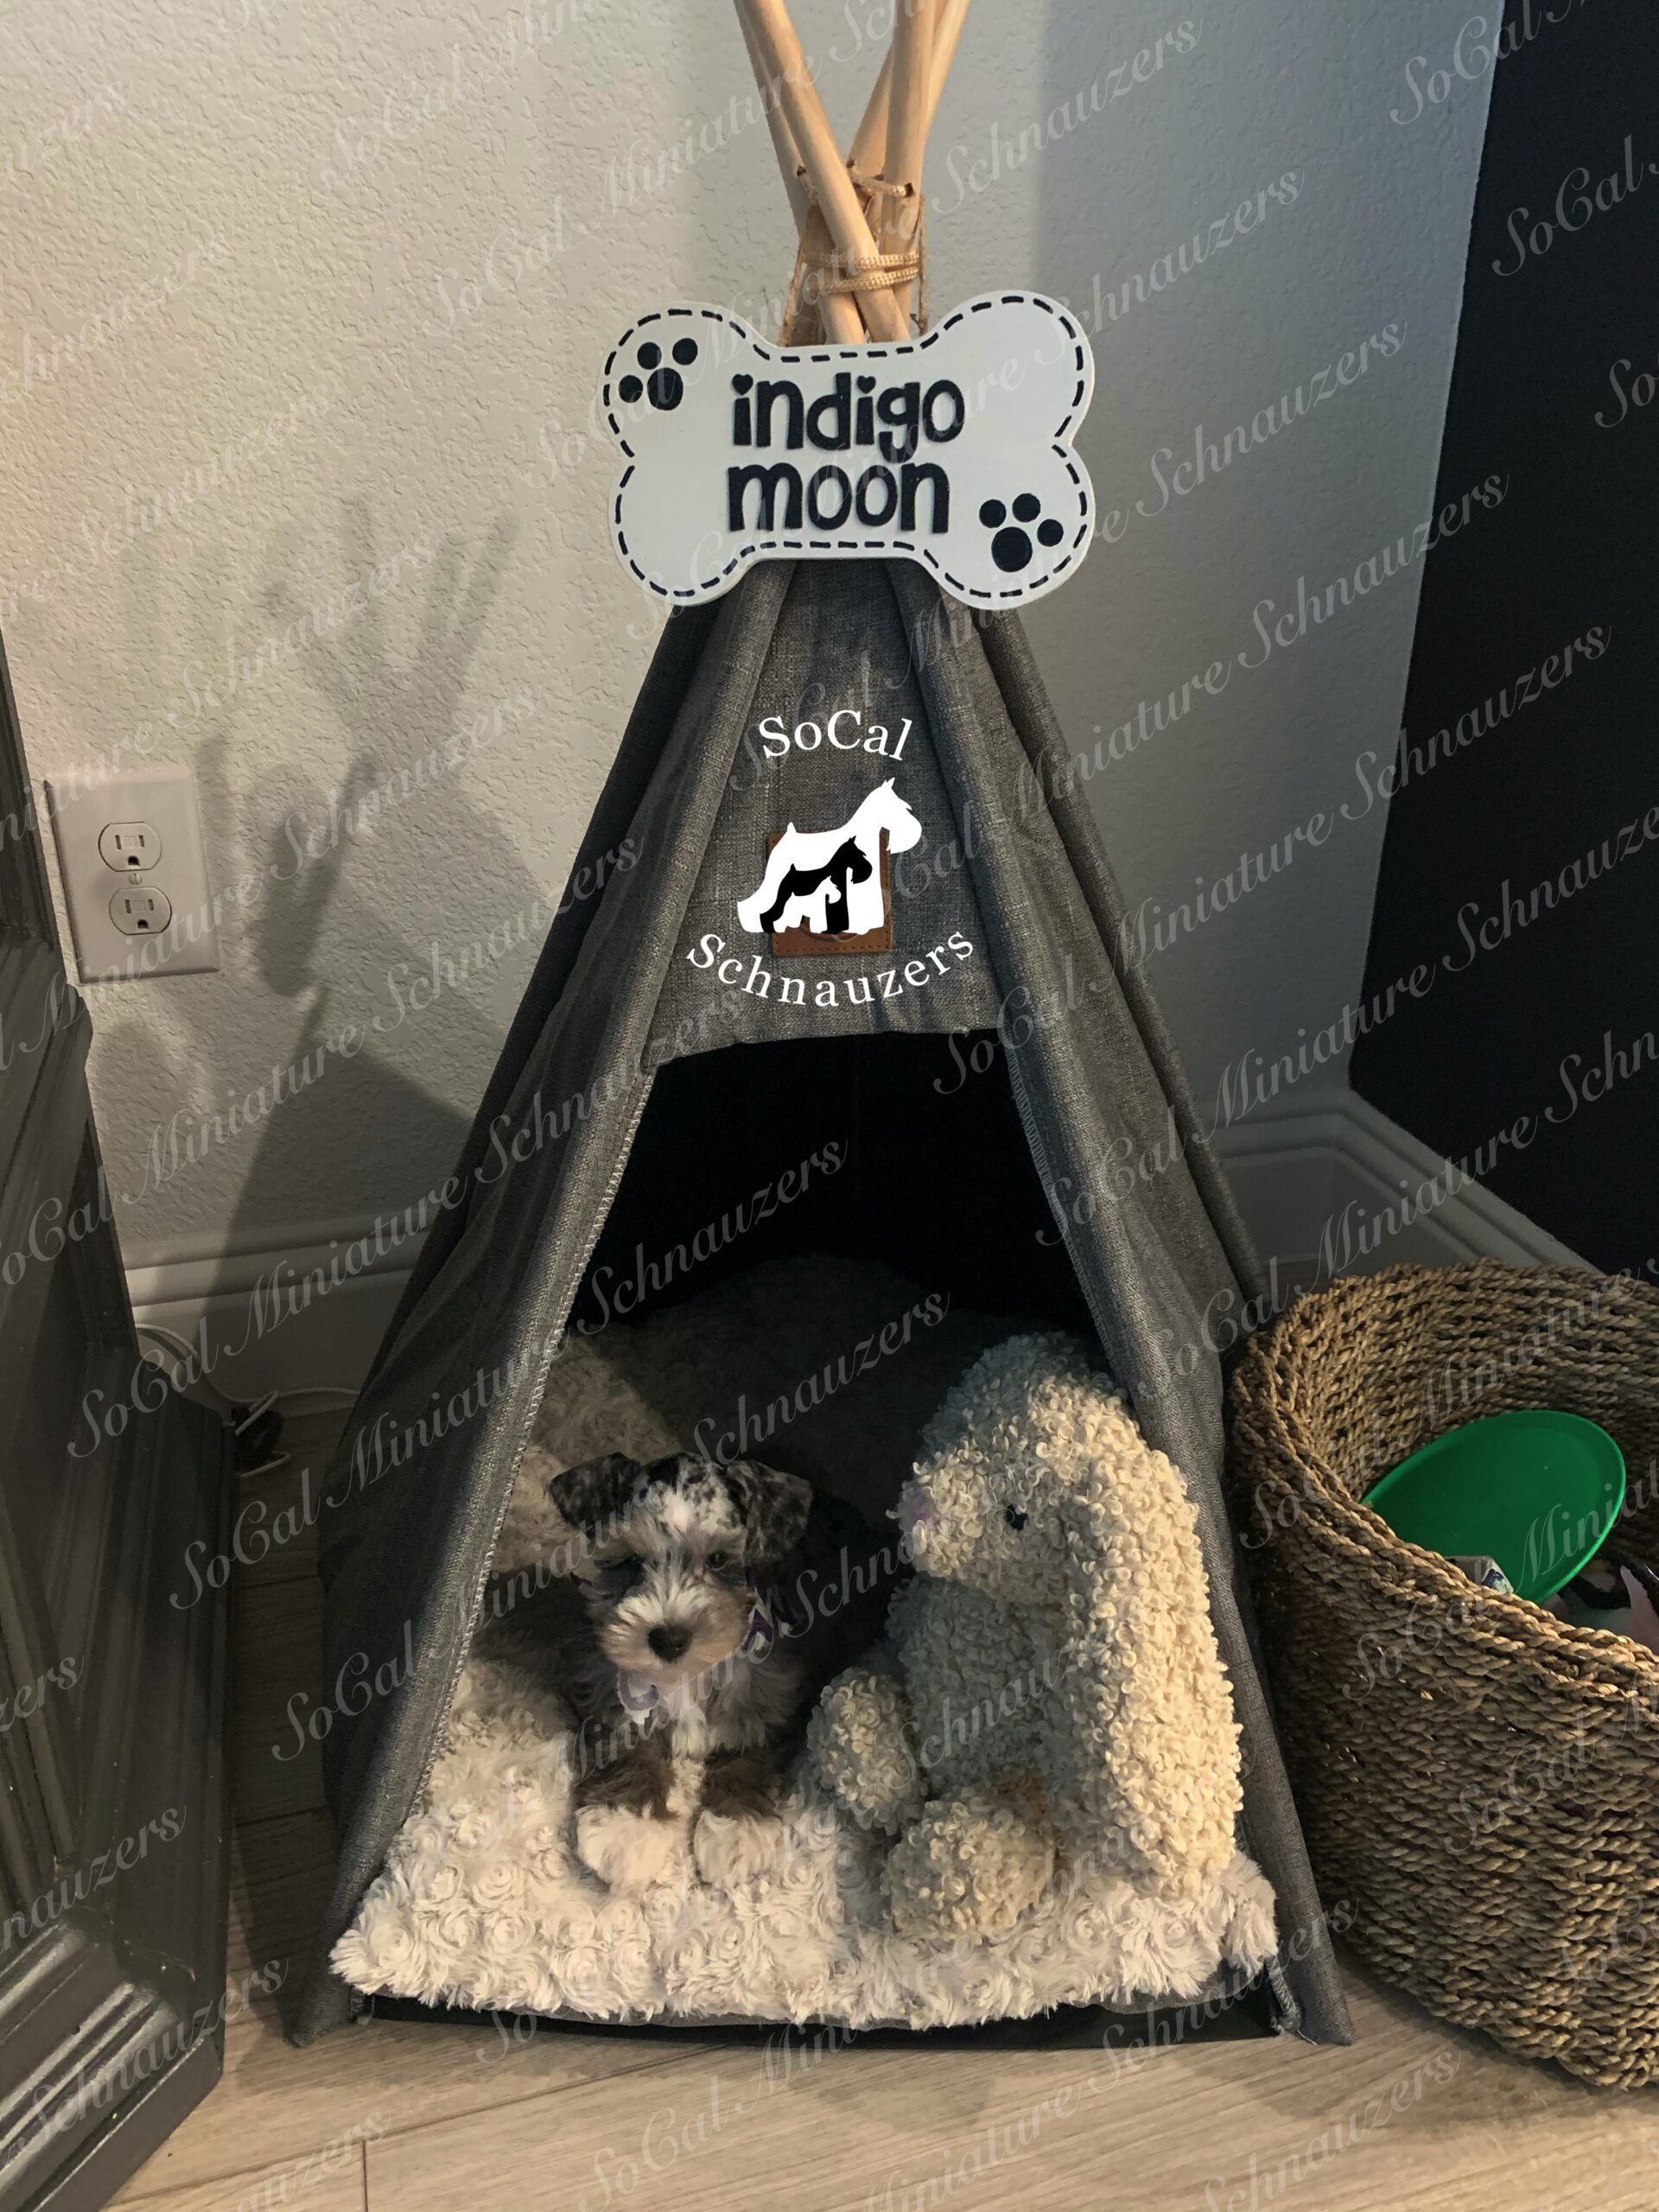 Schnauzer with bunny in tent